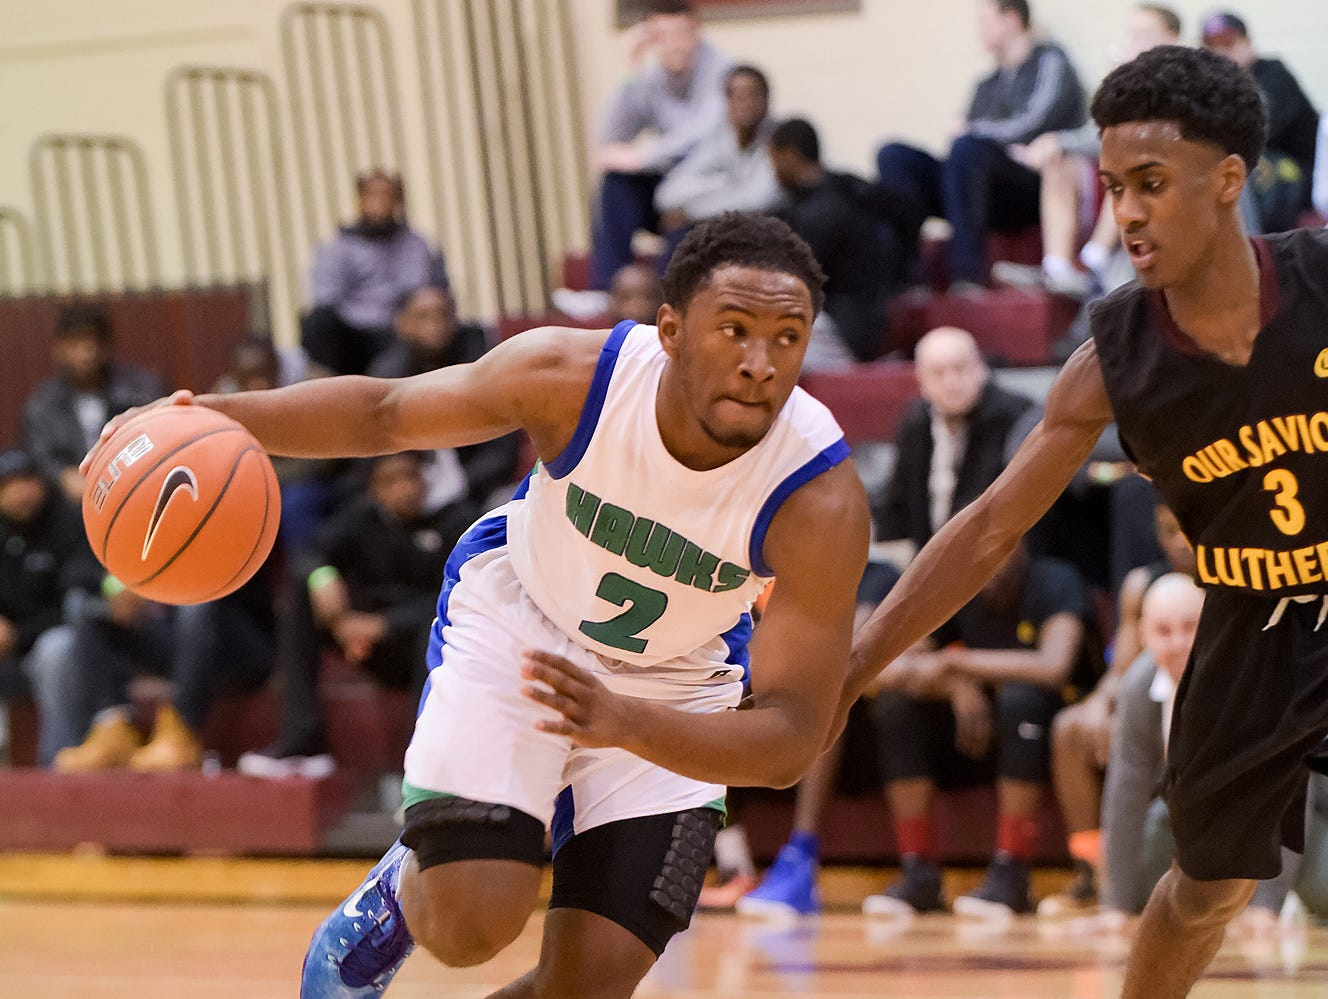 Kyson Rawls (2) of St. Georges drives against Matt Williams (3) of Our Saviour Lutheran of Bronx, N.Y., during the Concord Classic on Monday.